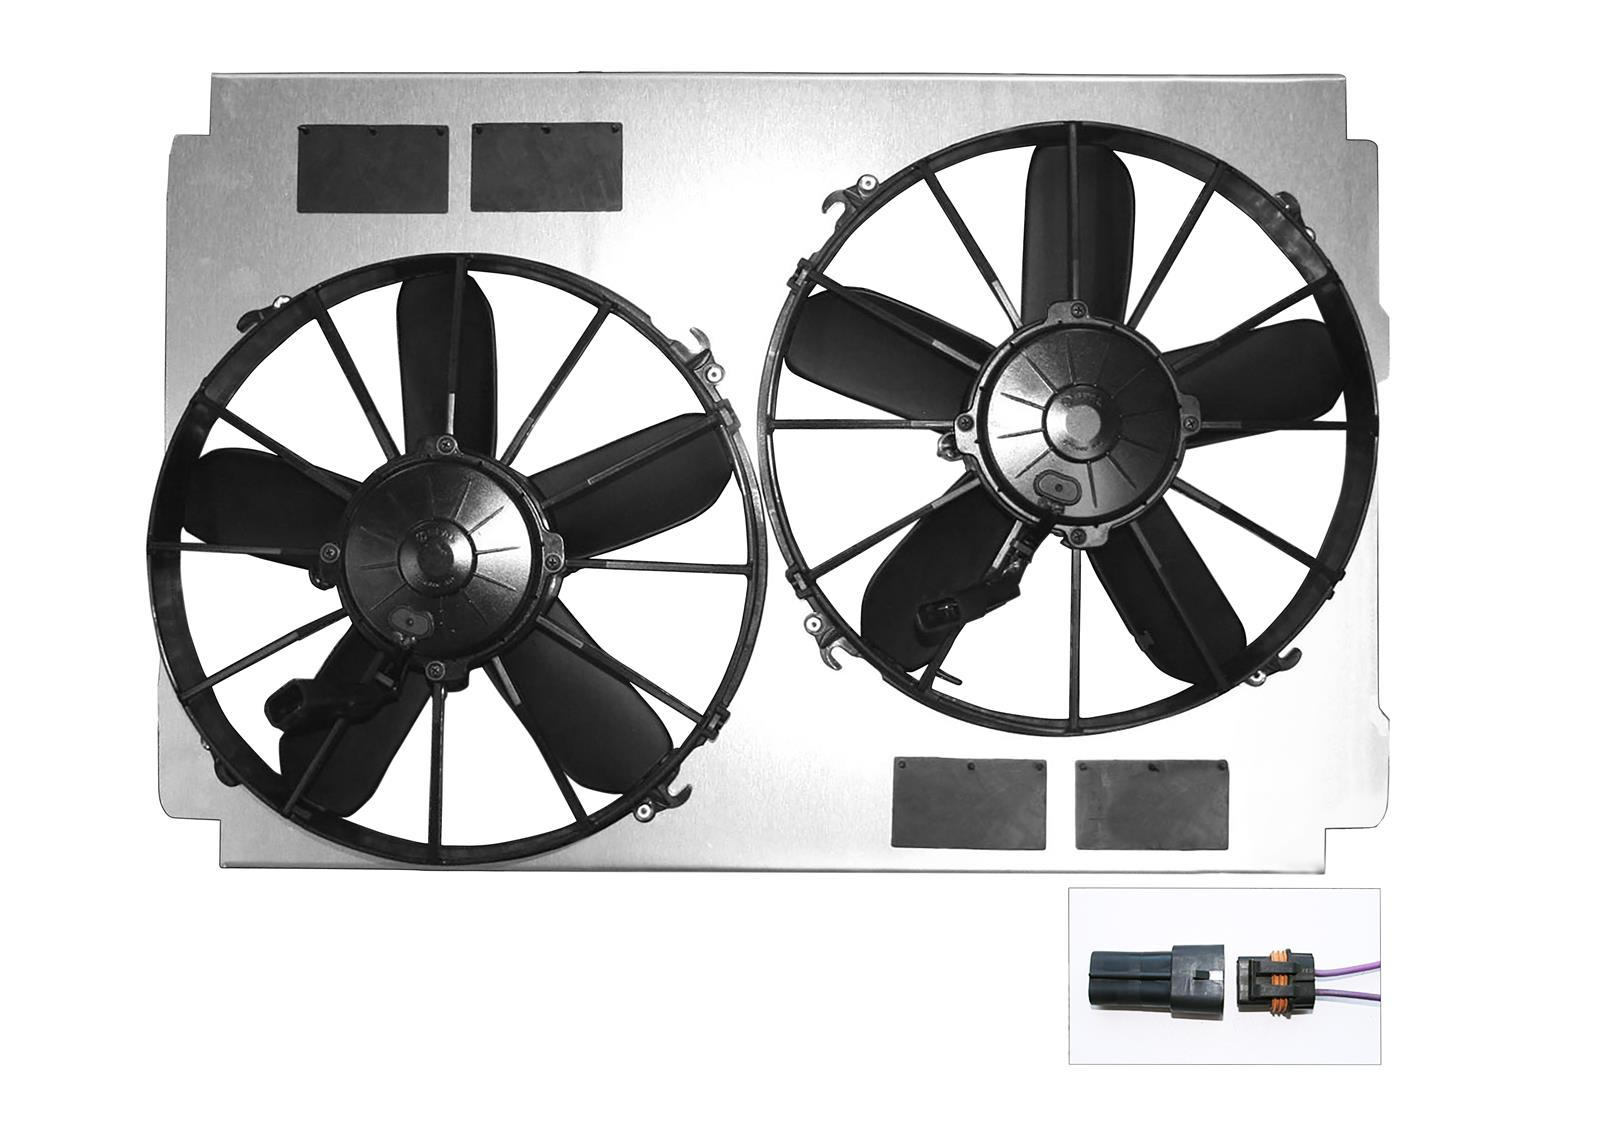 hight resolution of dewitts radiator electric fan upgrade kits 32 sp015 free shipping on orders over 99 at summit racing